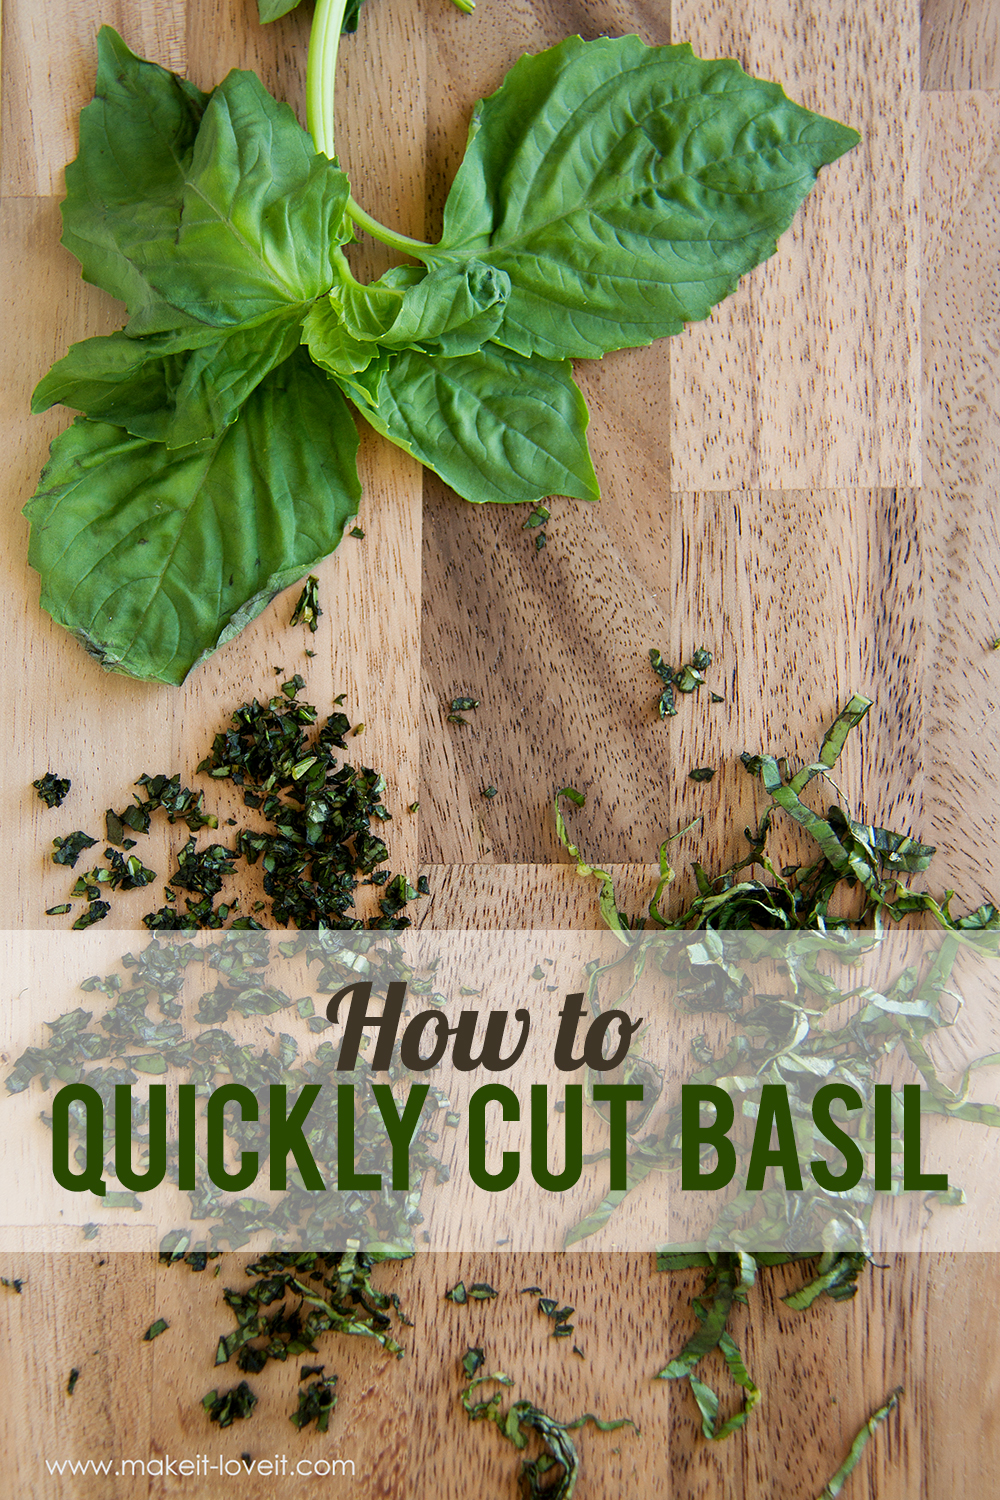 A simple kitchen tip: How to Quickly Cut Basil